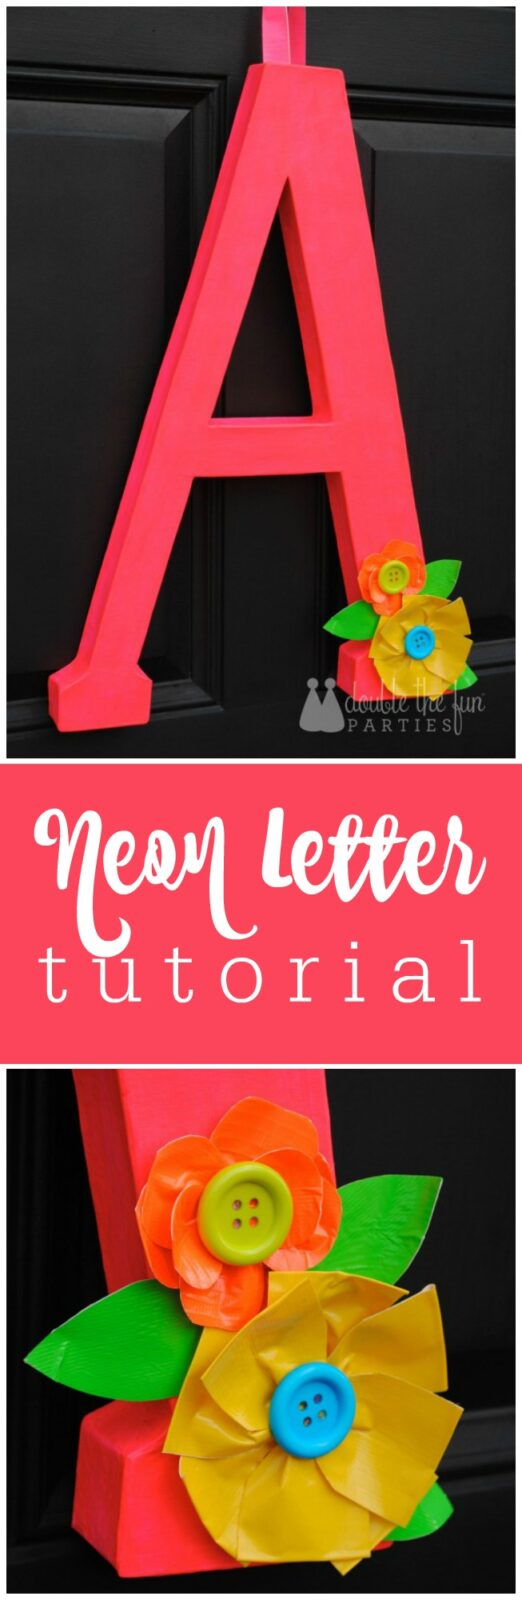 How to make a neon letter door decoration for yur neon party - The Party Teacher